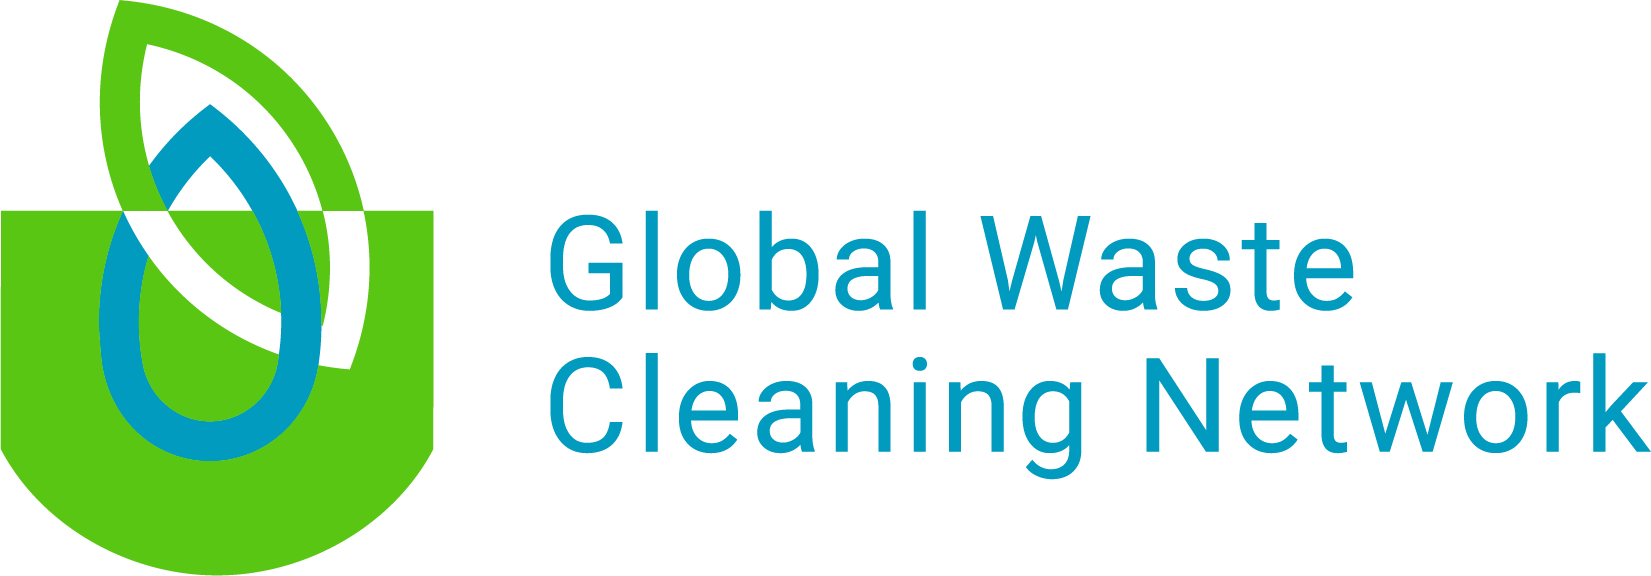 Global Waste Cleaning Network